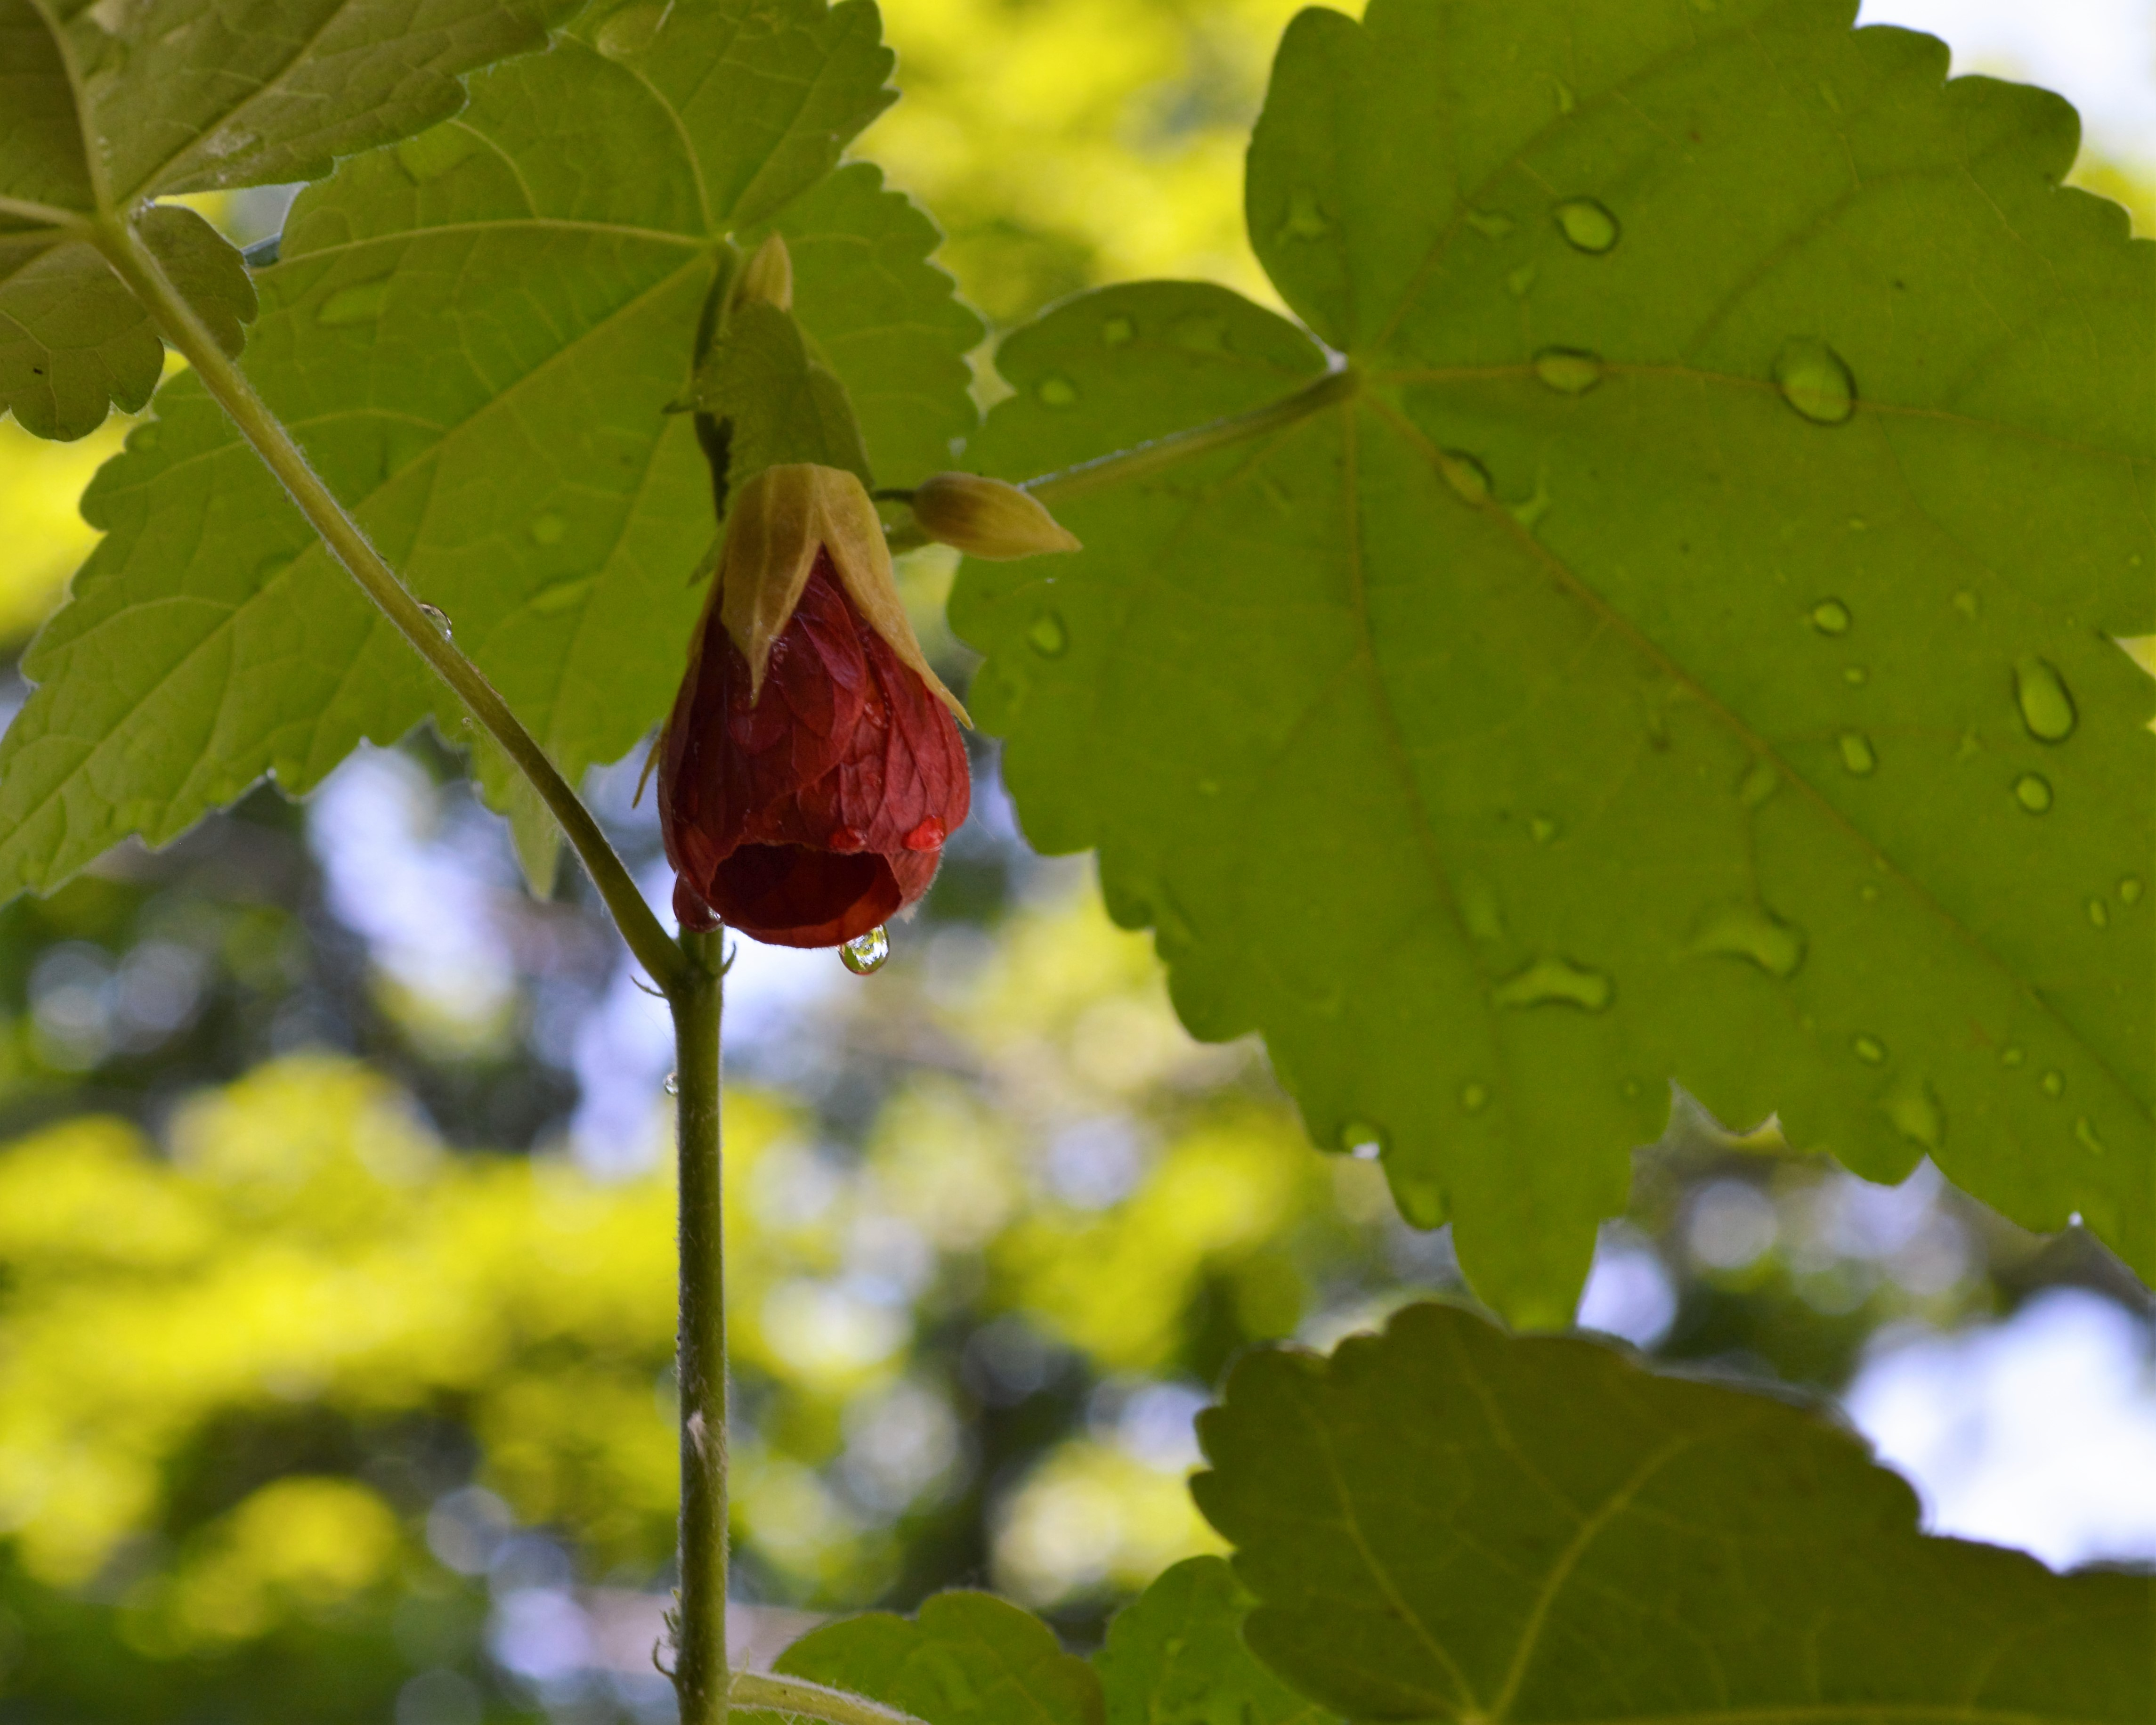 Abutilon (Flowering Maple) after the rain, Ithaca, New York